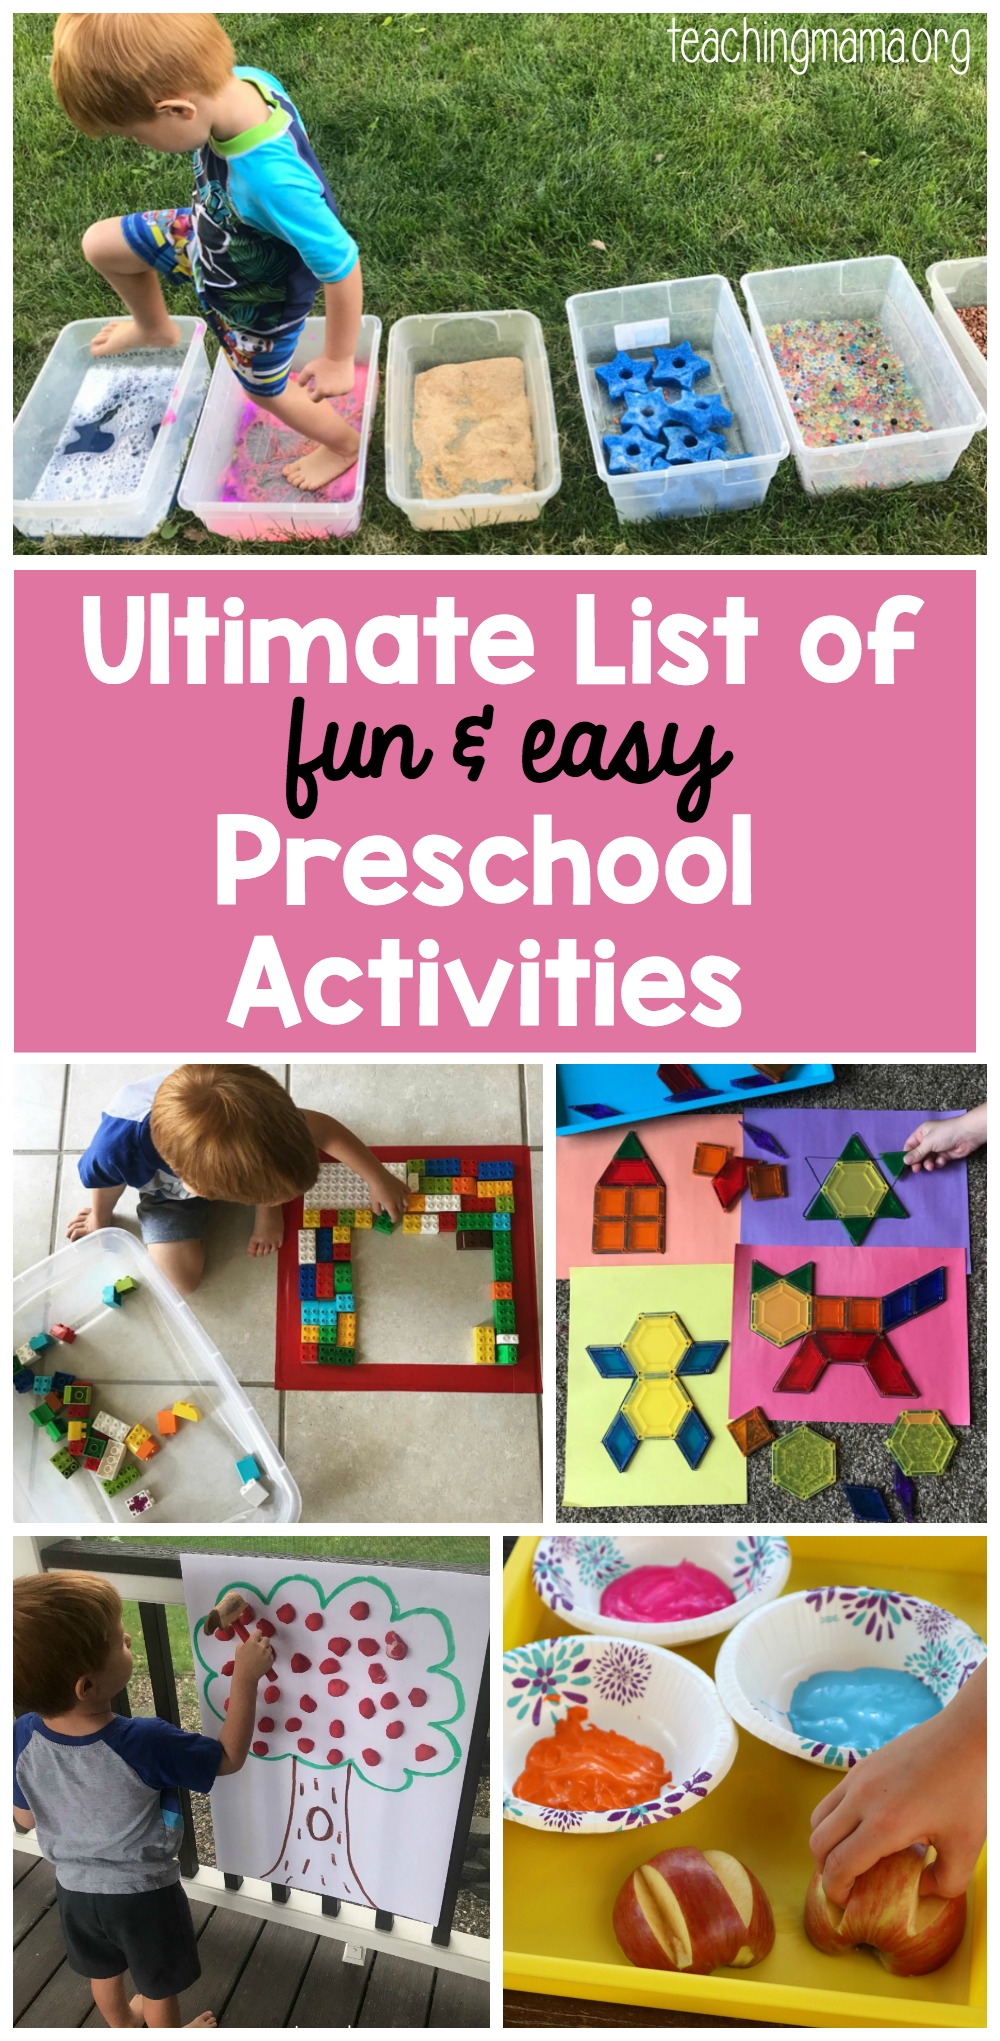 The Ultimate List Of Fun And Easy Preschool Activities